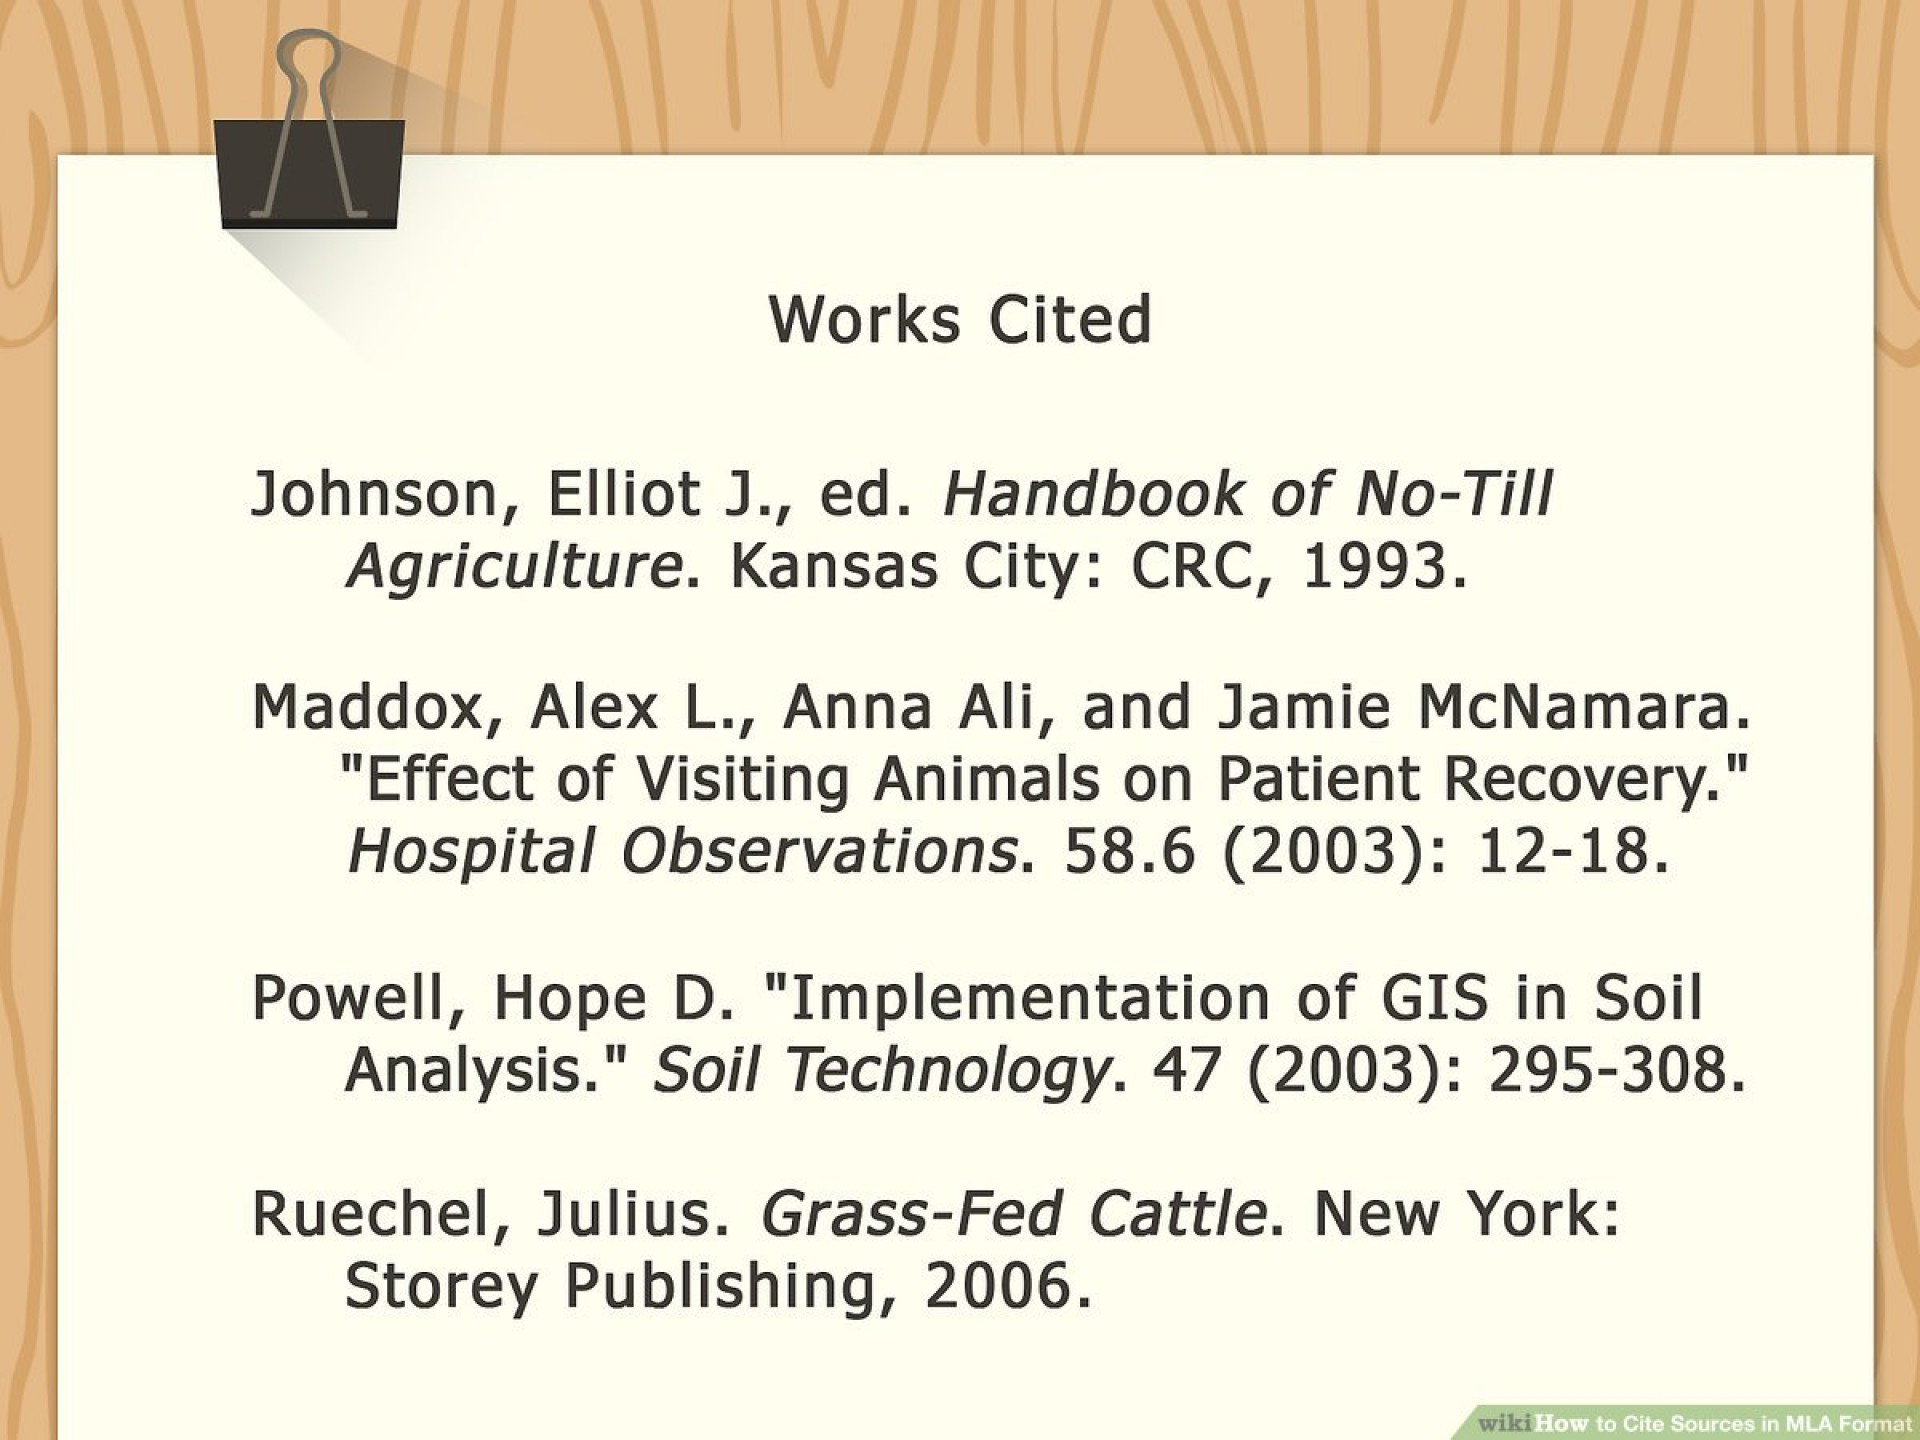 010 Aid372891 V4 1200px Cite Sources In Mla Format Step Version Research Paper Imposing Citation Text 1920